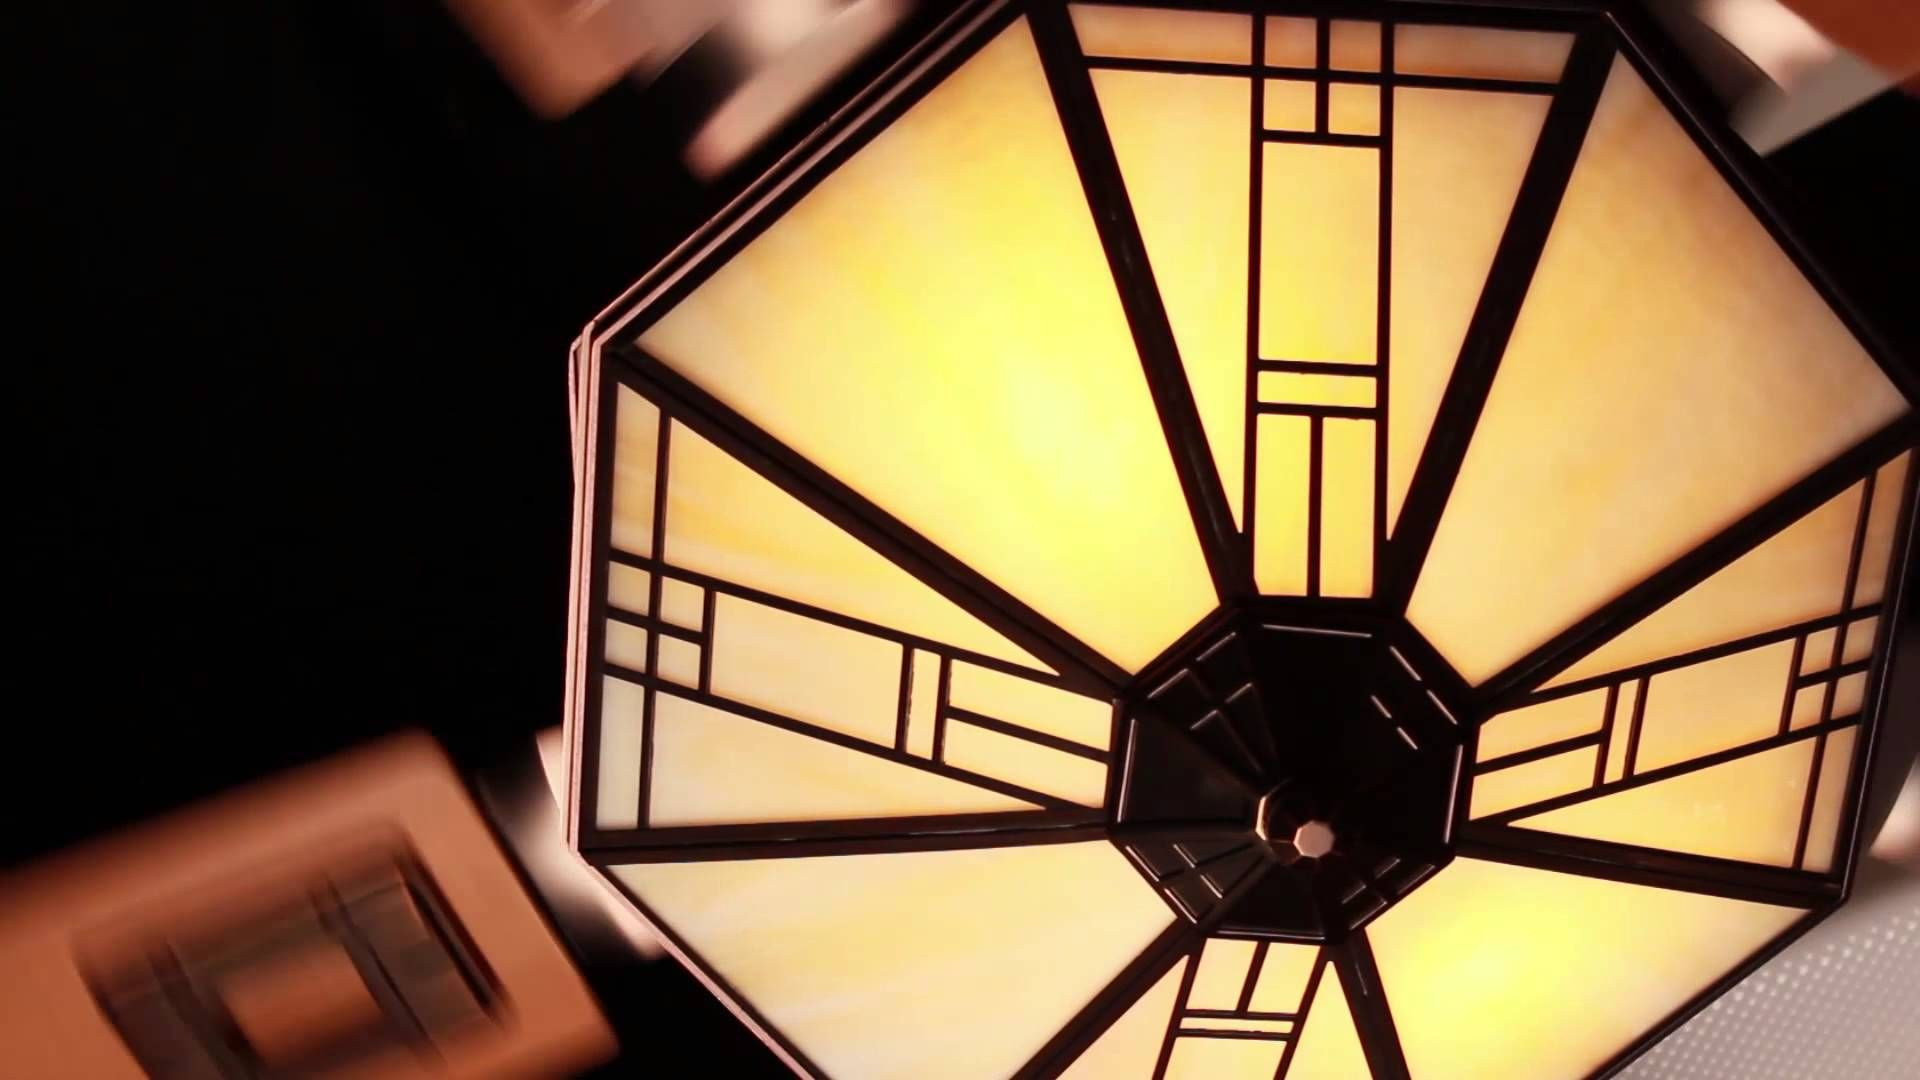 Add Decor And Lighting To Your Room Using Stained Glass Ceiling Fan Light Shades Warisan Lighting Craftsman Ceiling Fans Tiffany Ceiling Fan Ceiling Fan